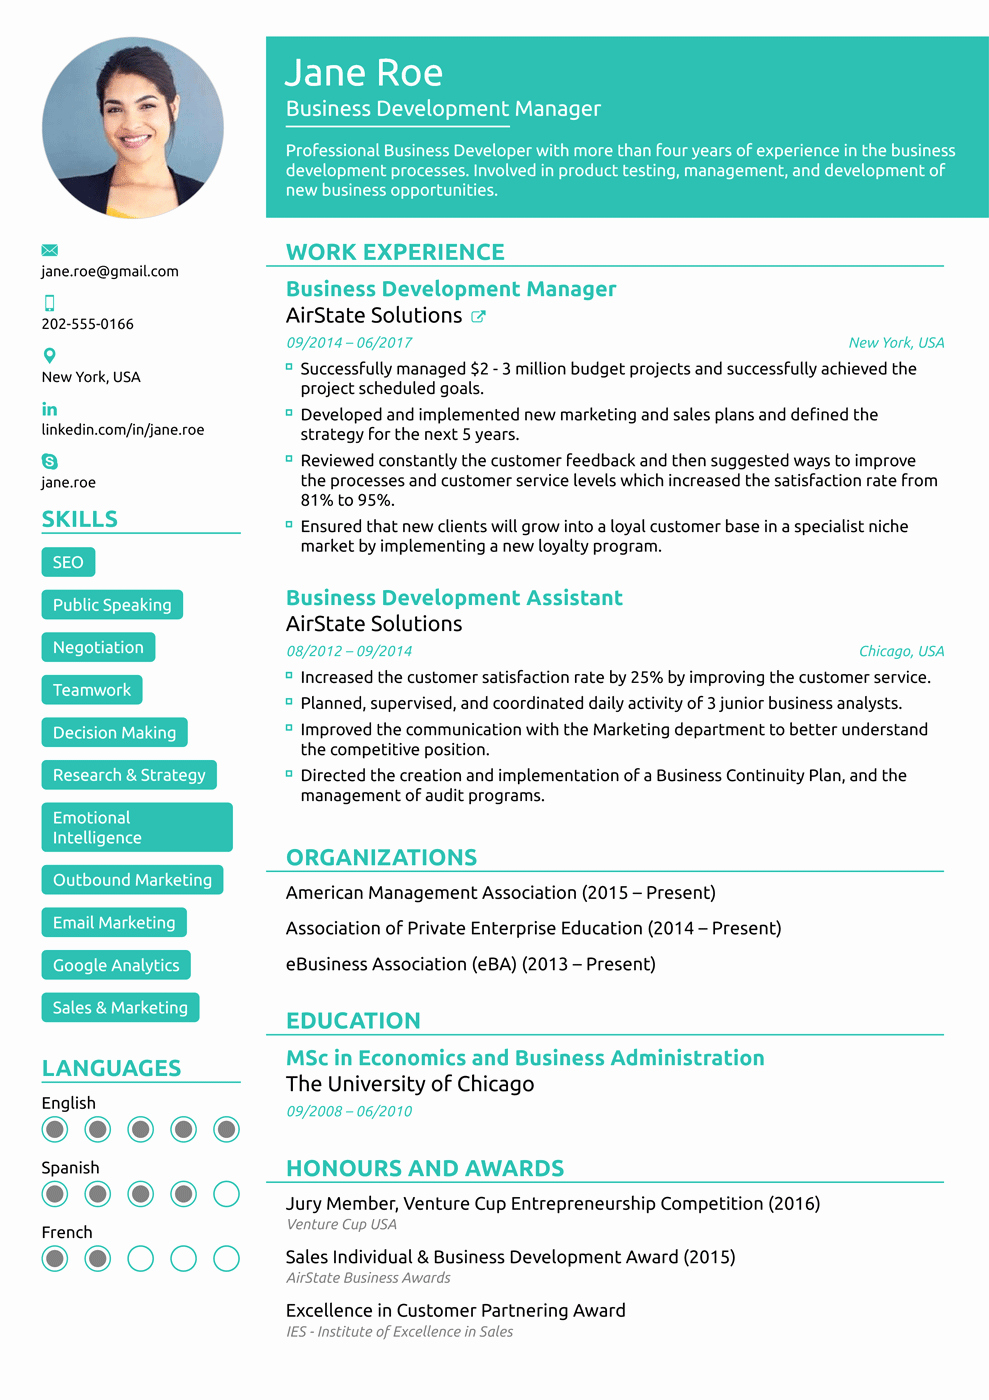 Functional Resume Template Word Luxury 8 Best Line Resume Templates Of 2018 [download & Customize]